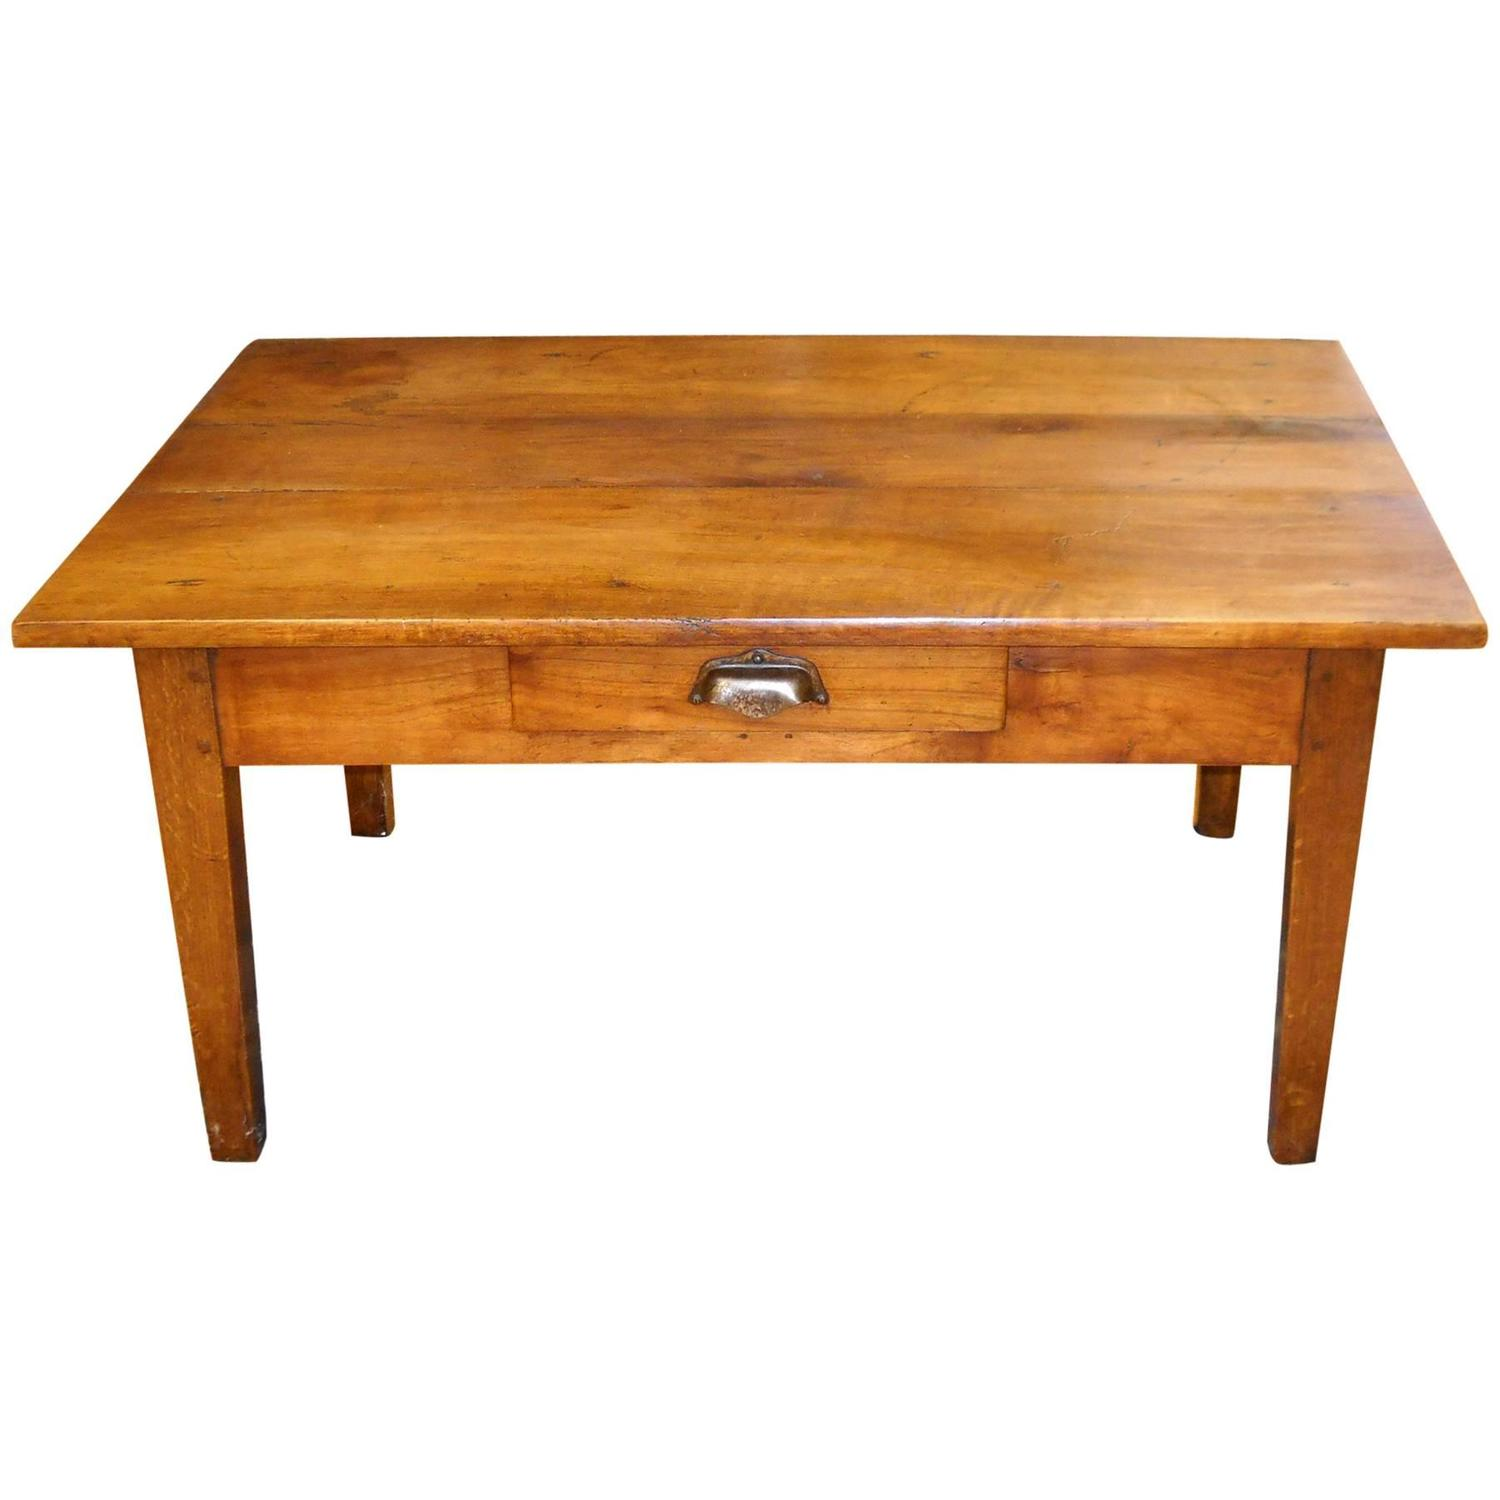 Coffee Table With Drawers Sale: One Drawer French Cherry Coffee Table For Sale At 1stdibs